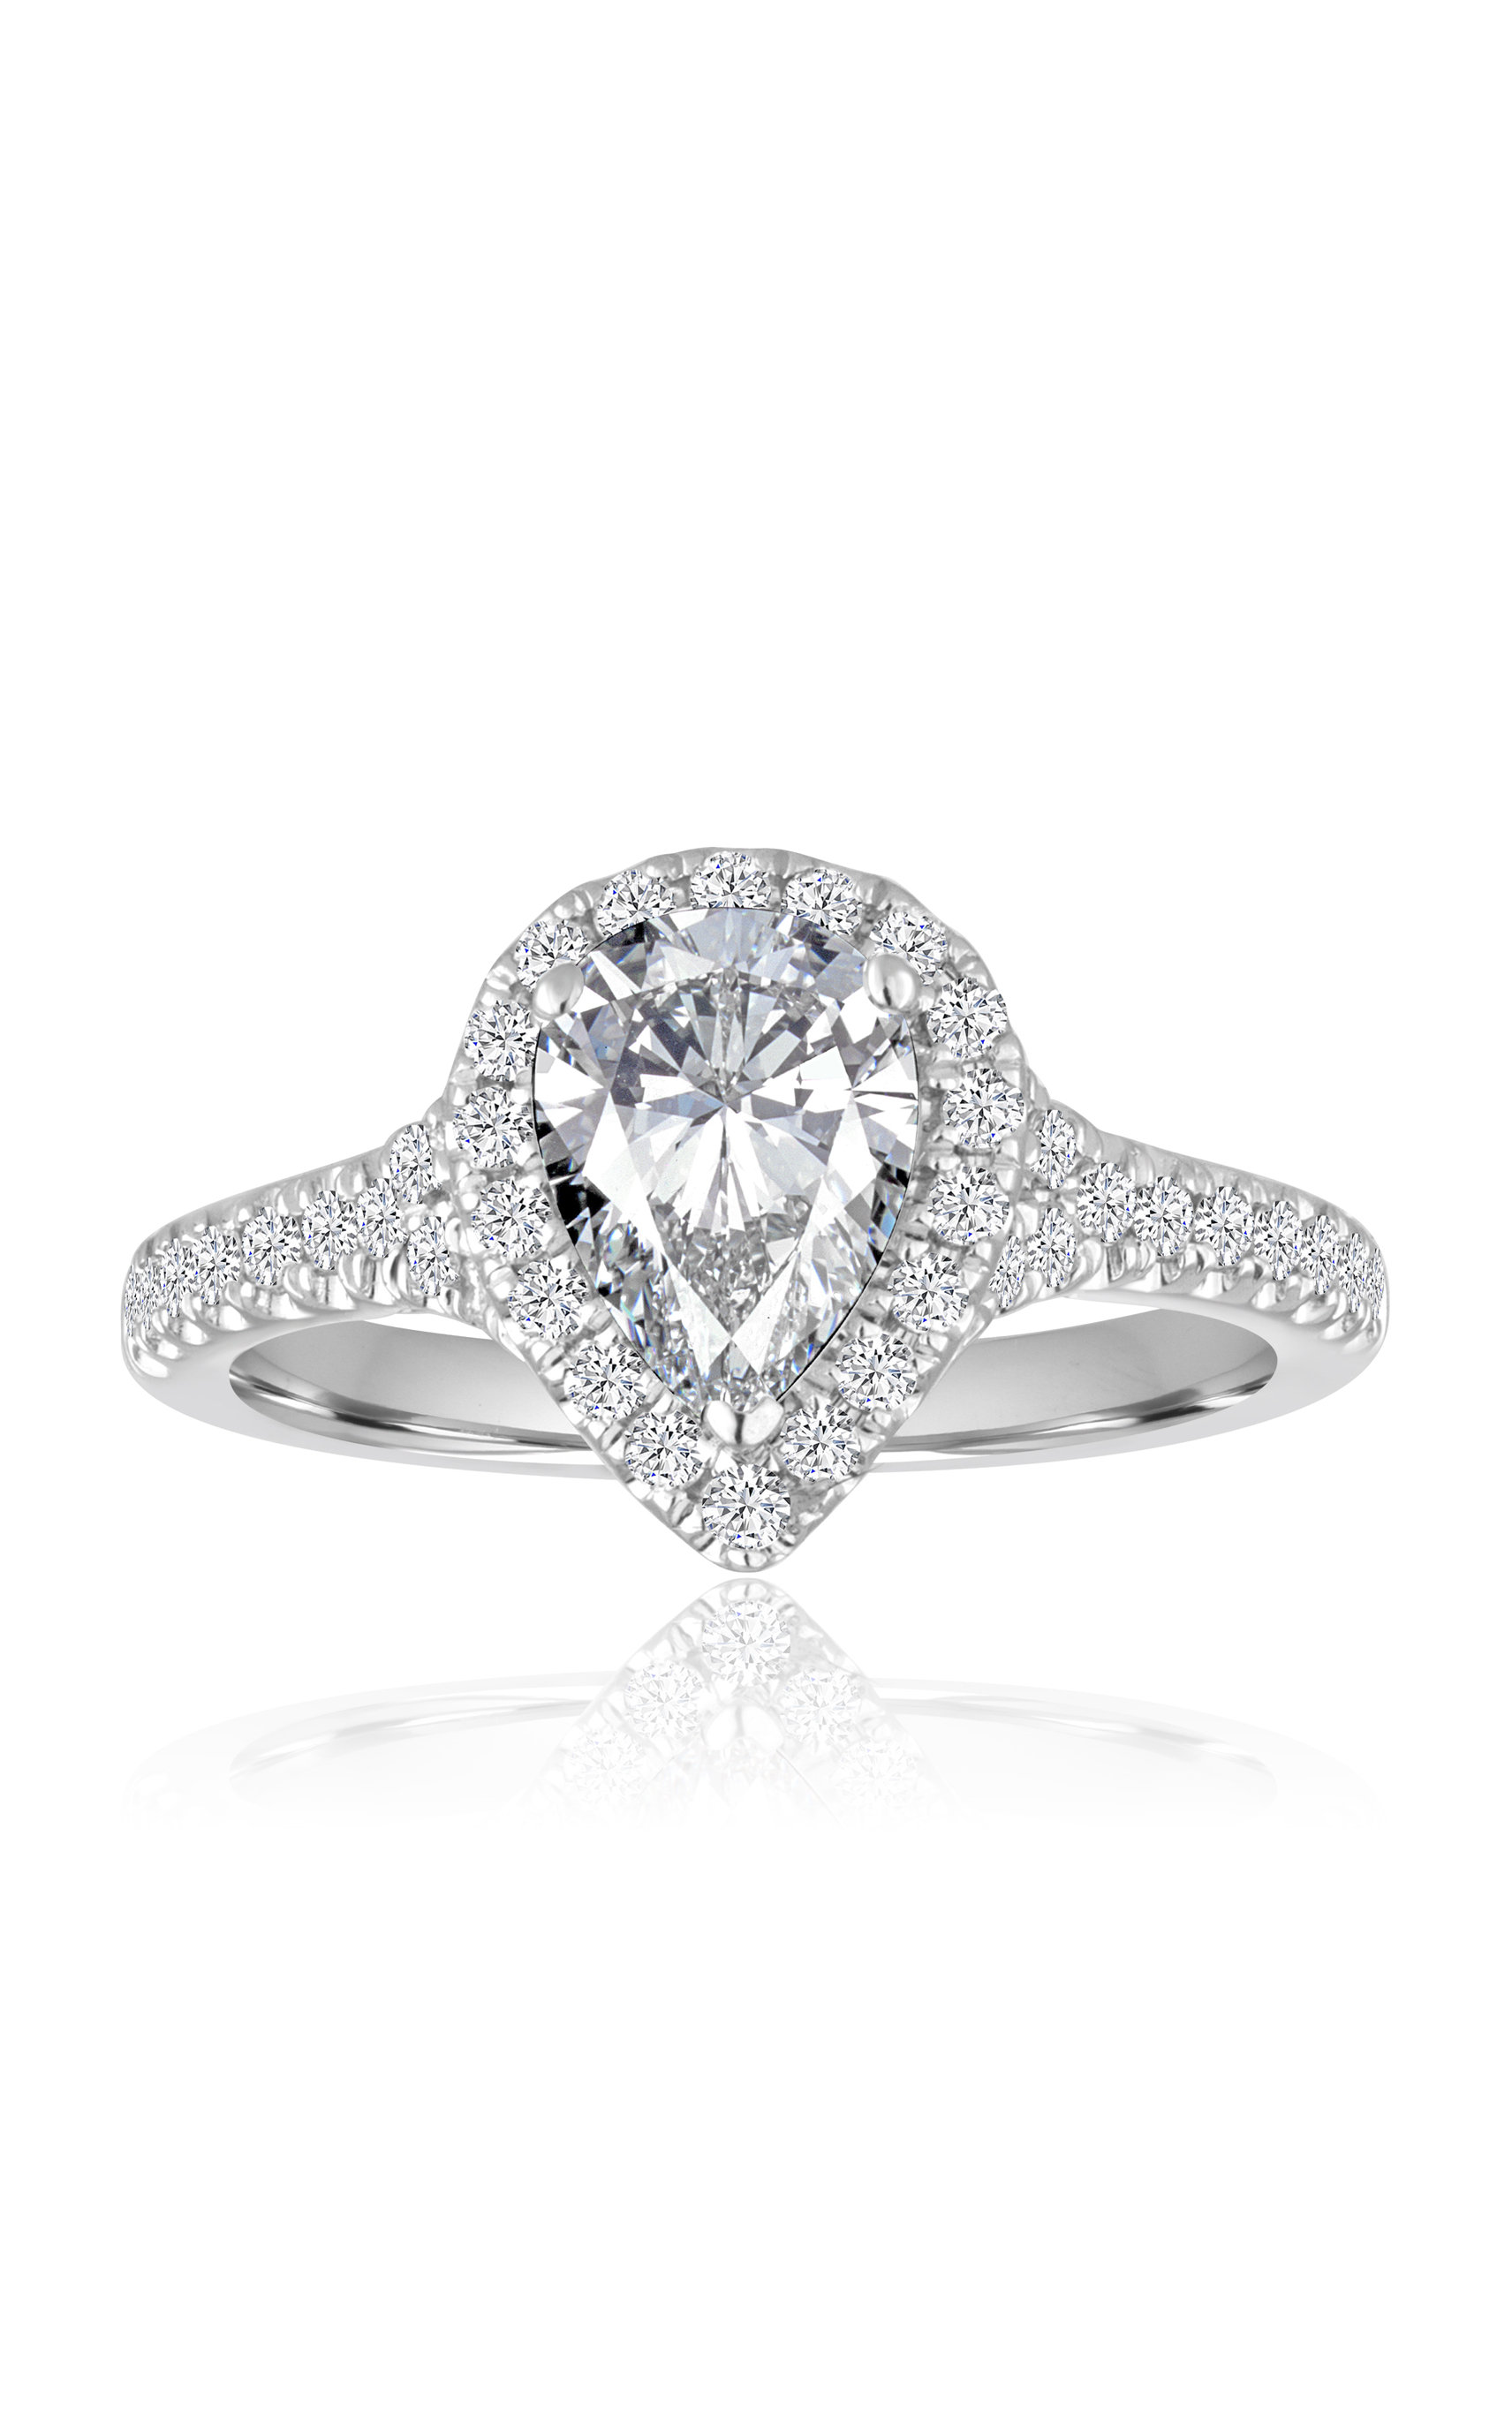 Shop Imagine Bridal 63216D1 5 Engagement rings The Wedding Ring Shop